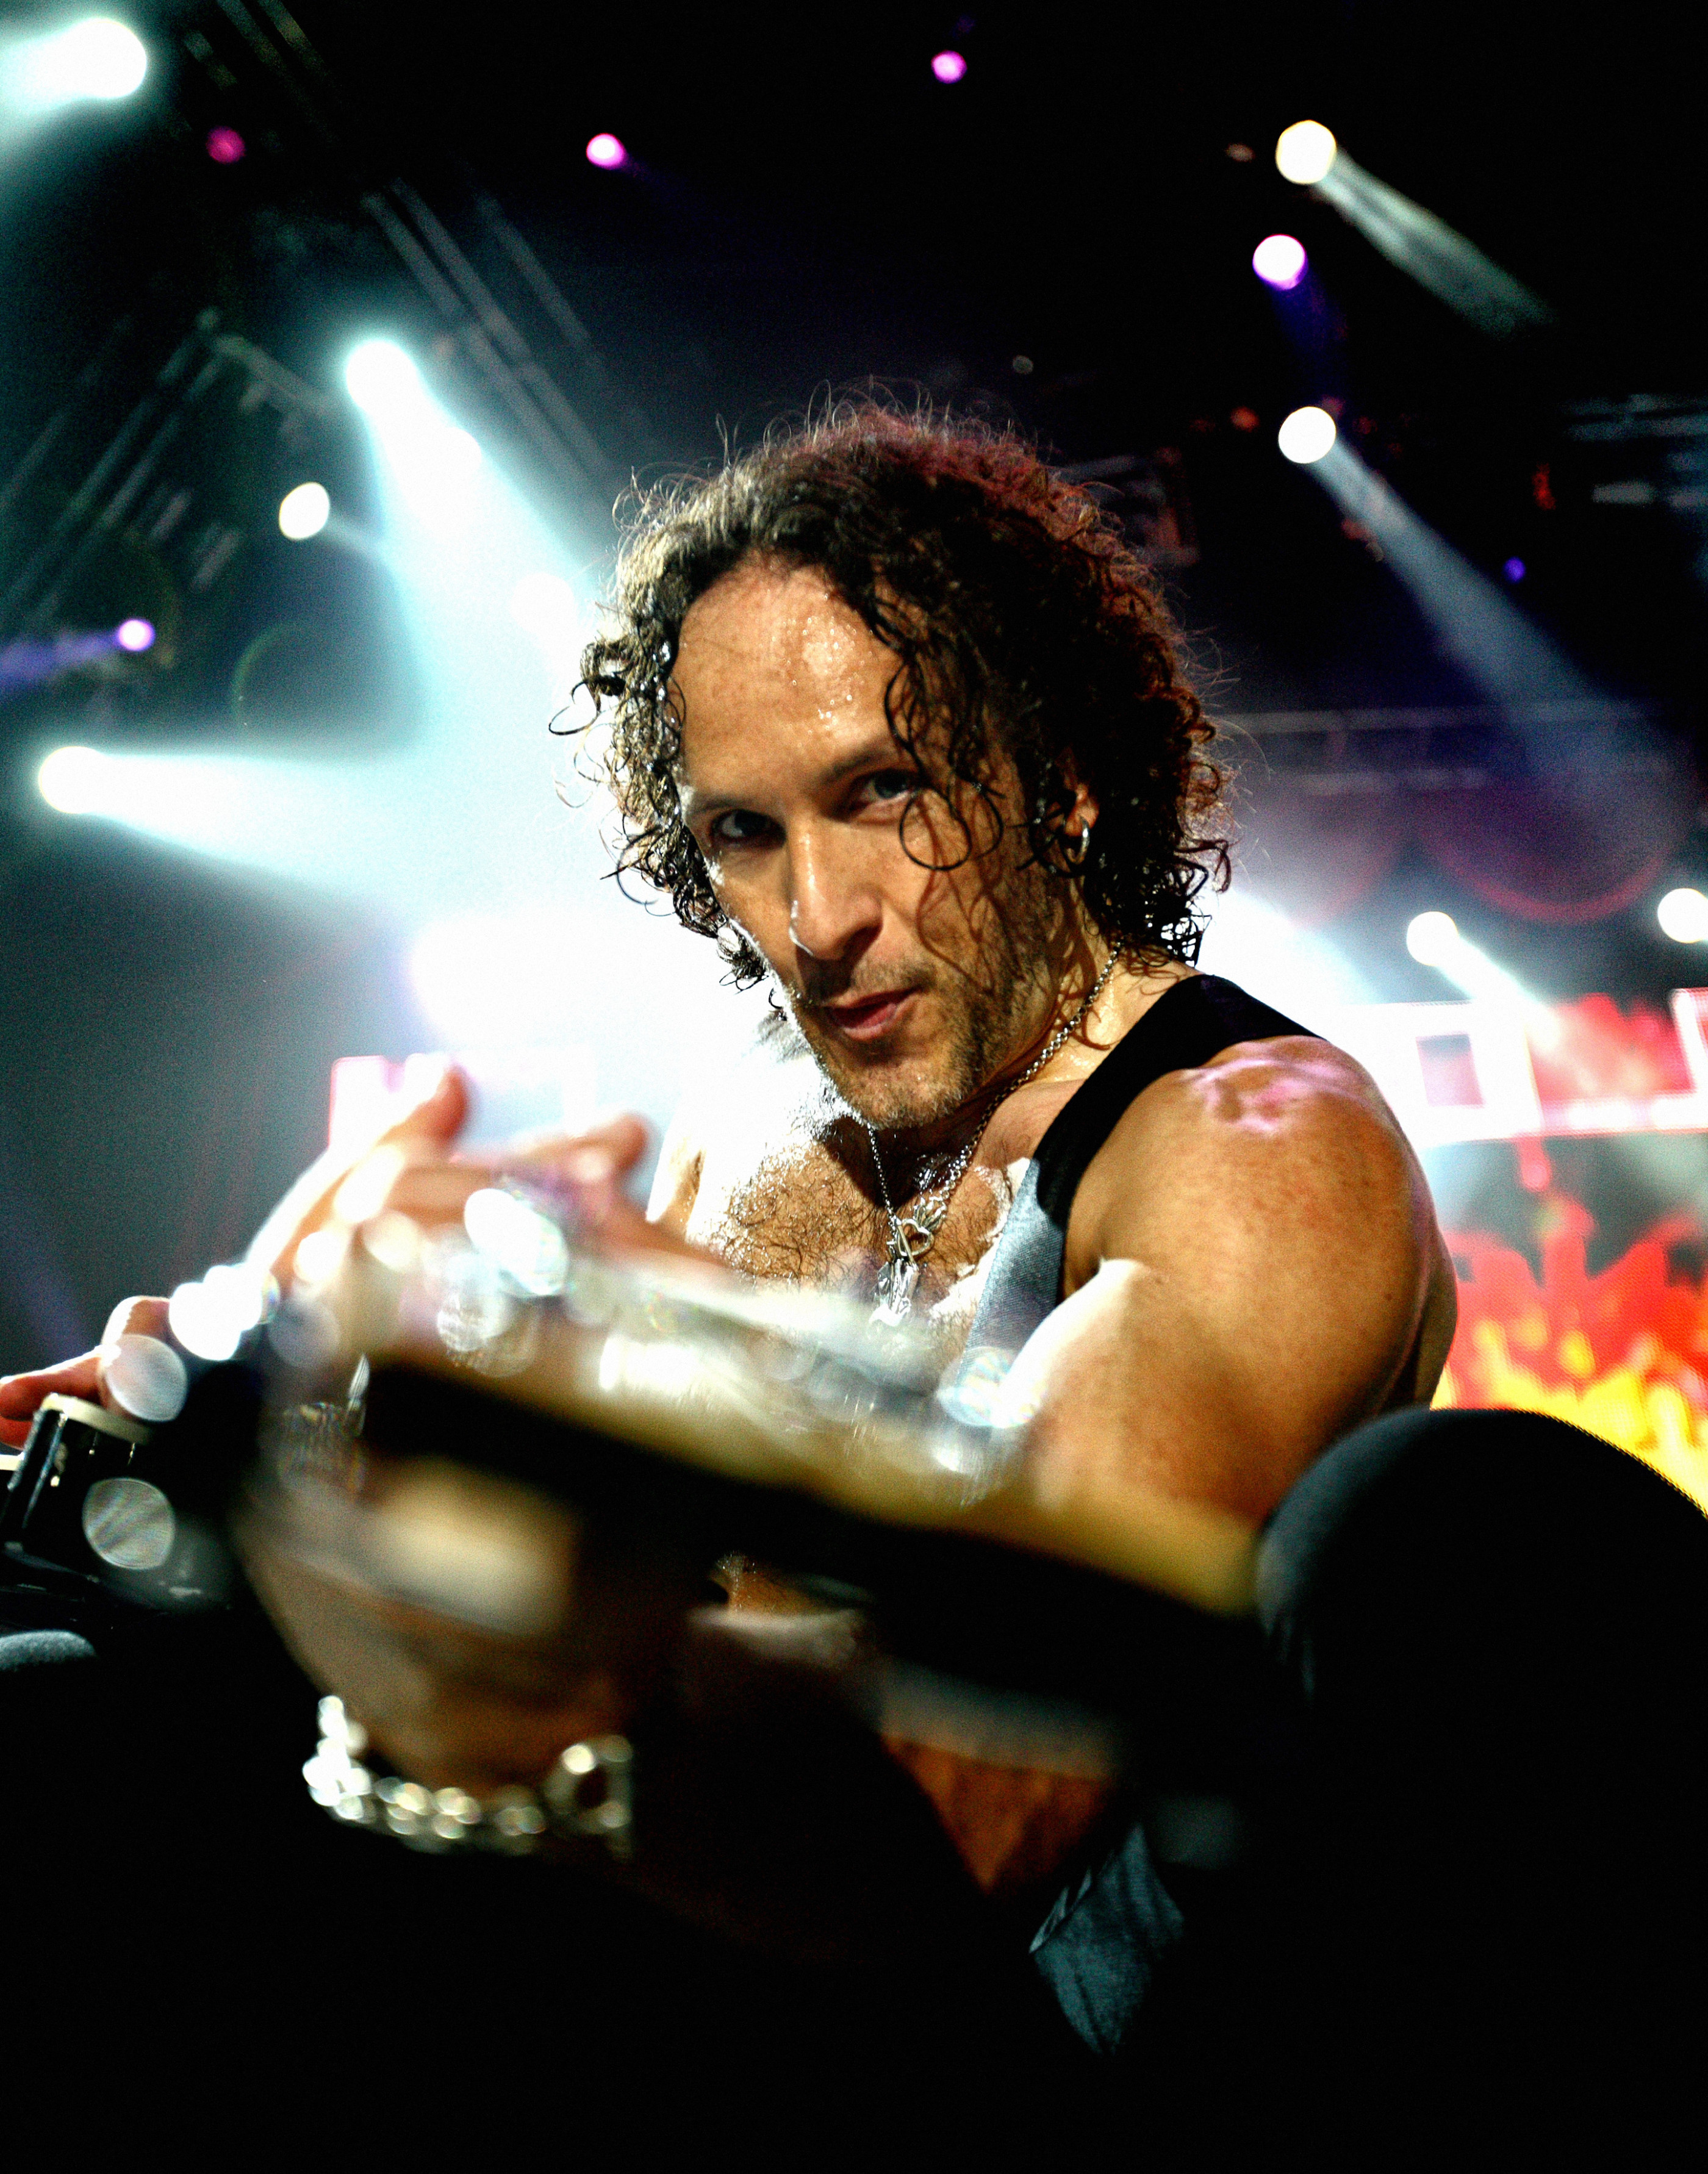 Vivian Campbell by Ash Newell